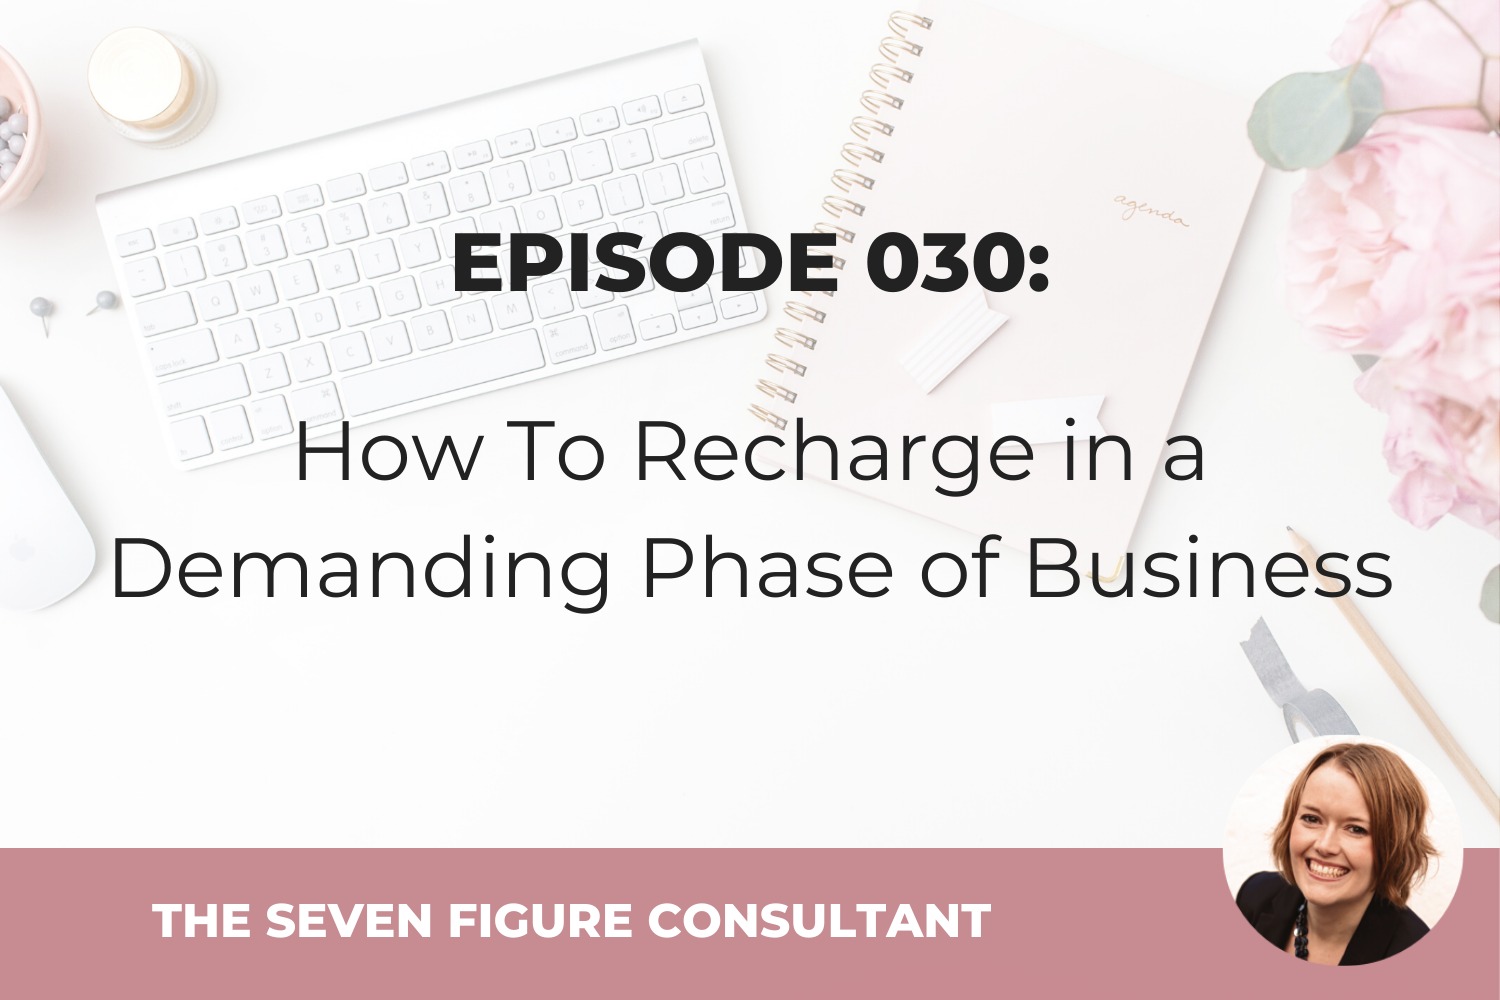 Episode 030: How To Recharge in a Demanding Phase of Business